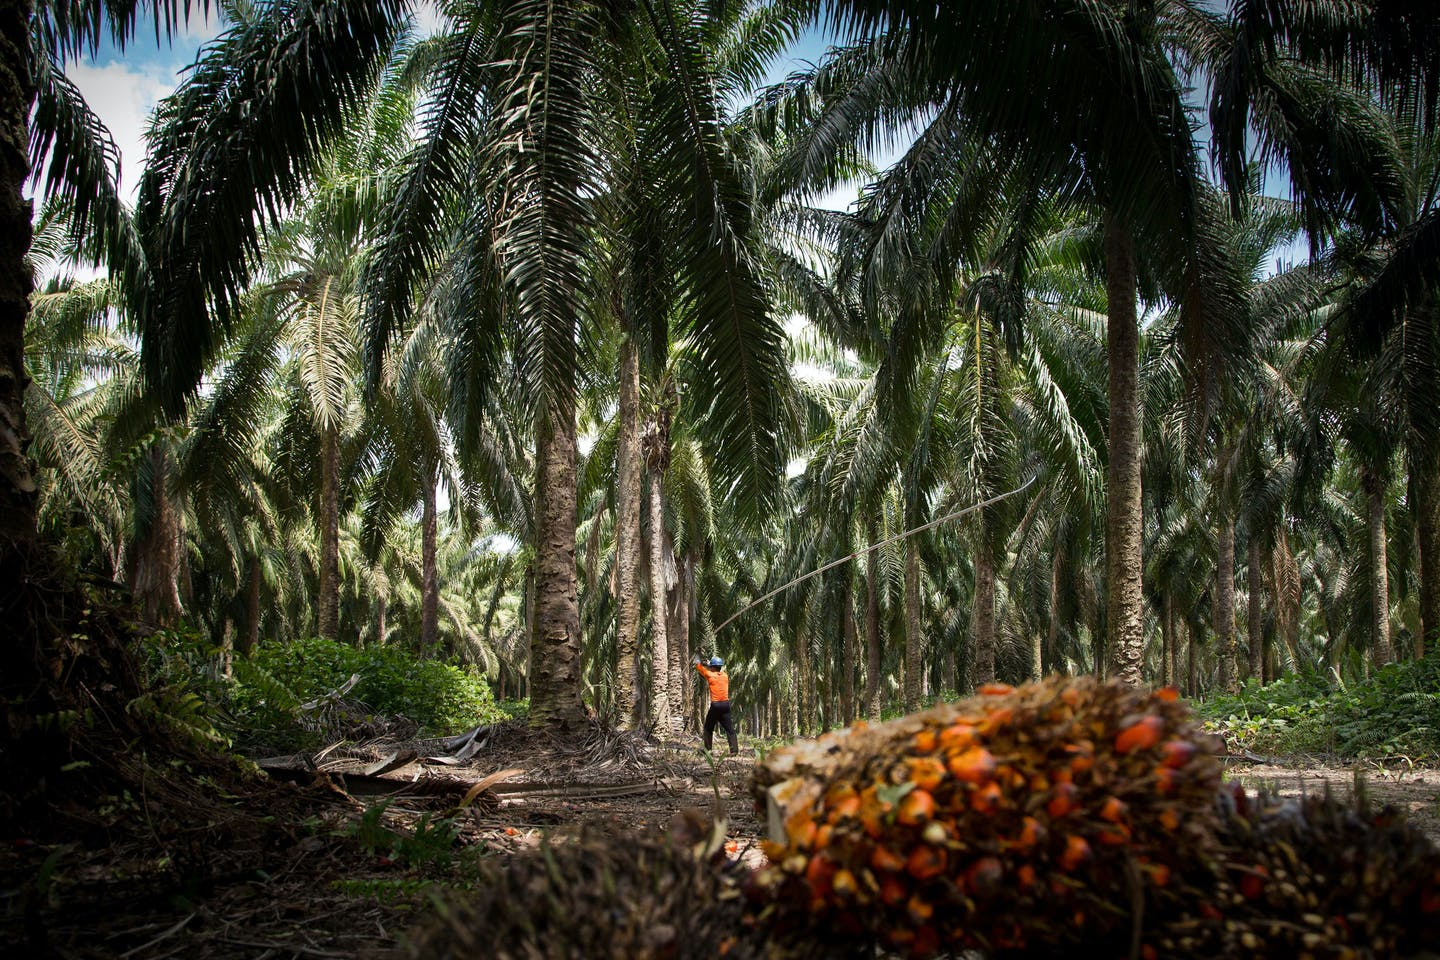 Brazil oil palm plantation